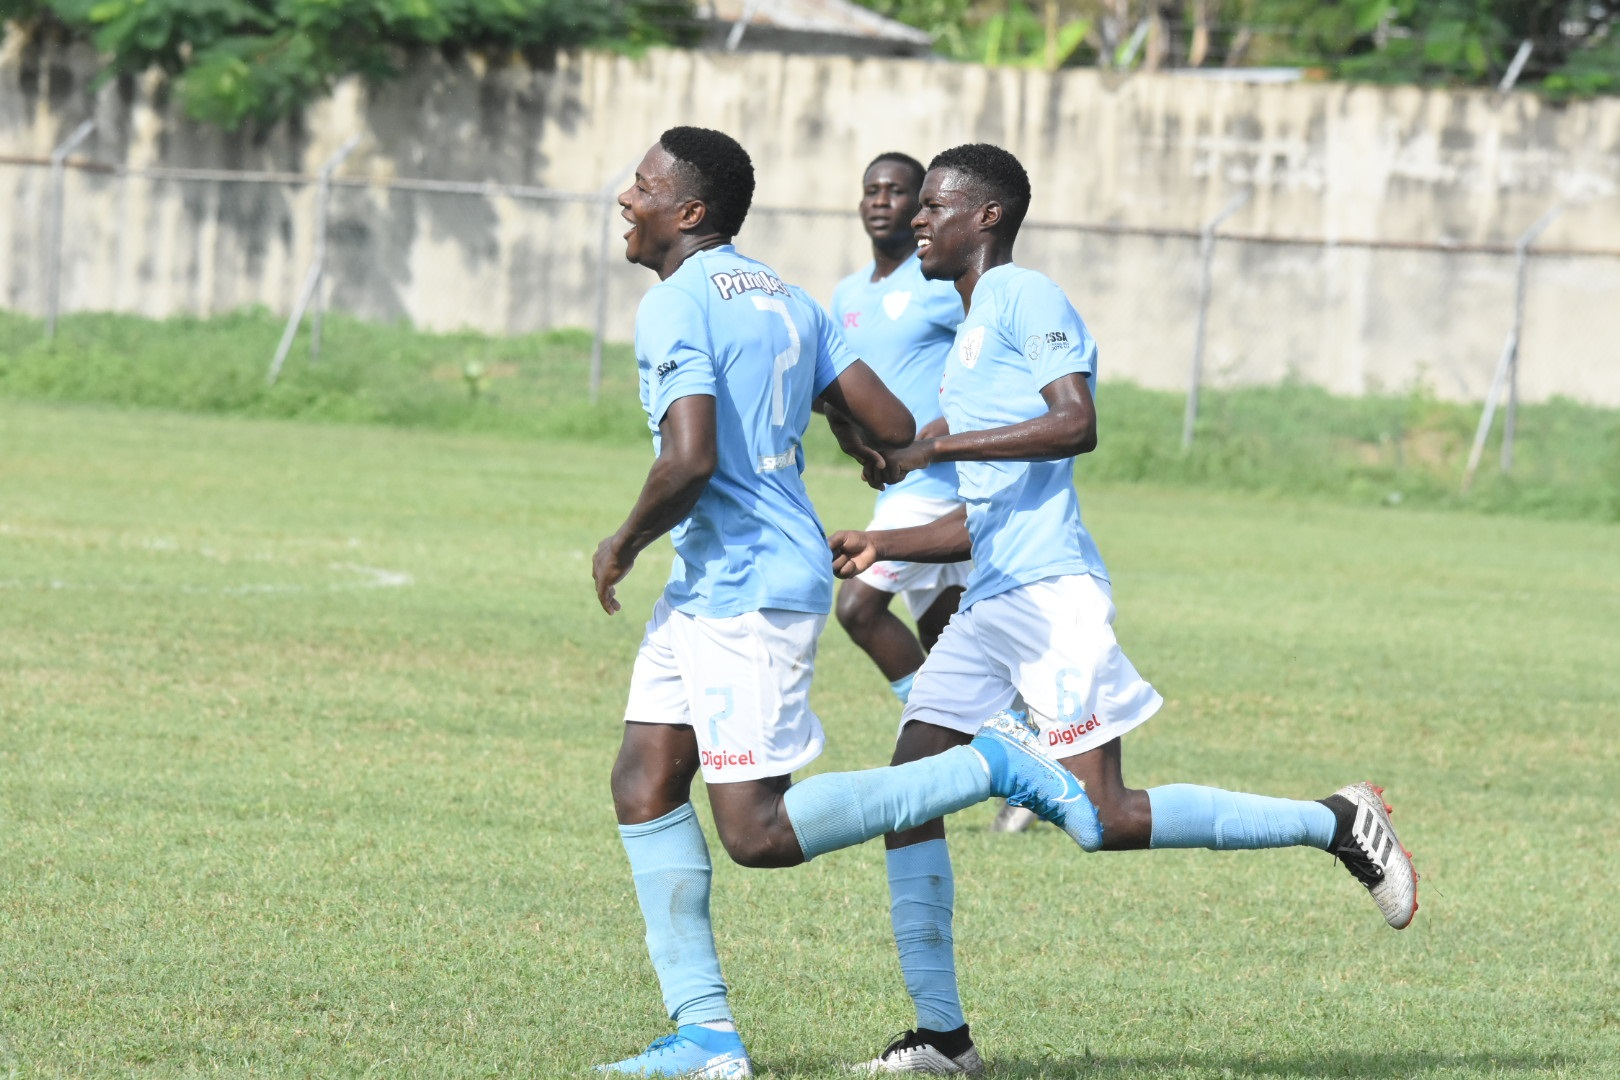 St Catherine High School players celebrate a goal during their first round fixture against Holy Trinity High in the 2019 ISSA/Digicel Walker Cup knockout football competition at Prison Oval on Thursday, November 7, 2019. (PHOTOS: Marlon Reid).